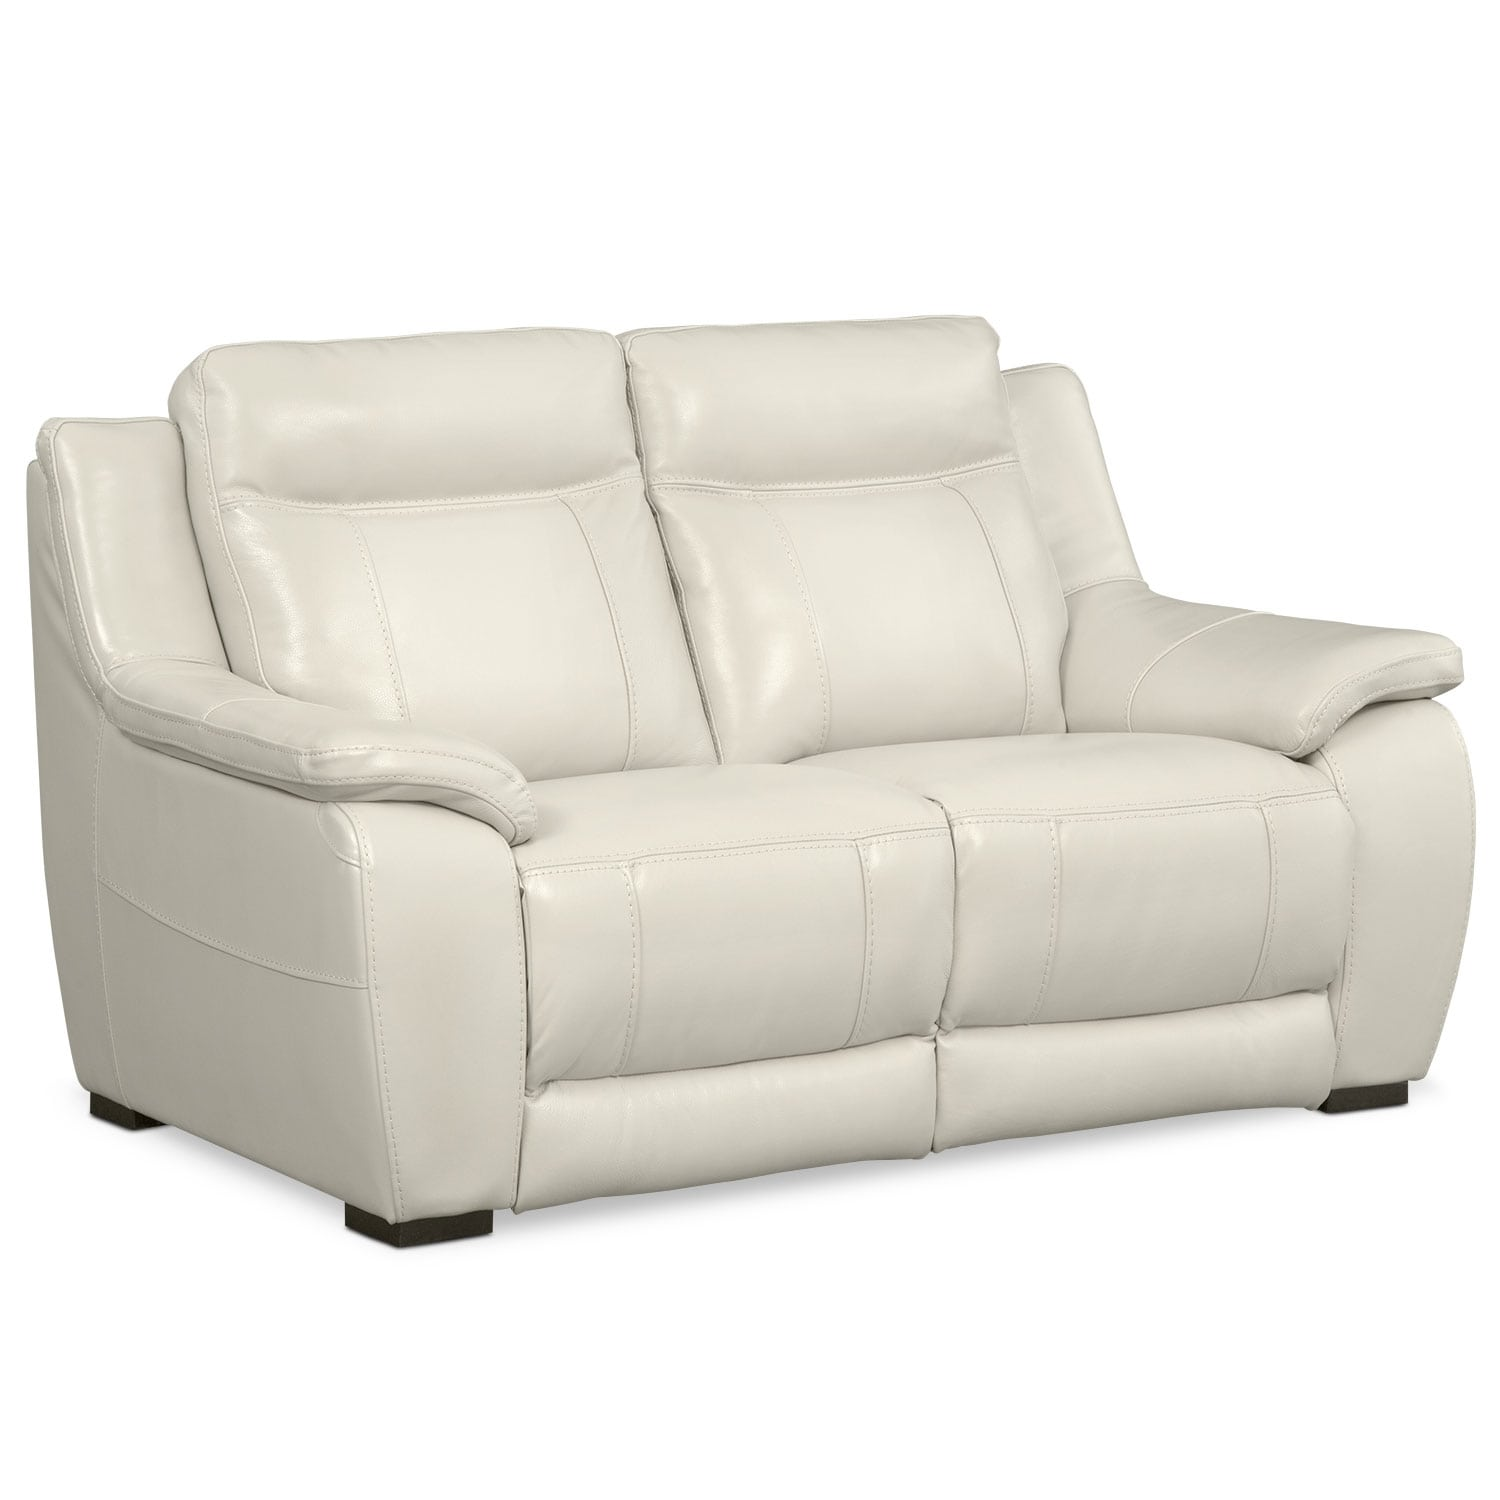 Was $989.99 Today $890.99 Lido Loveseat   Ivory By One80